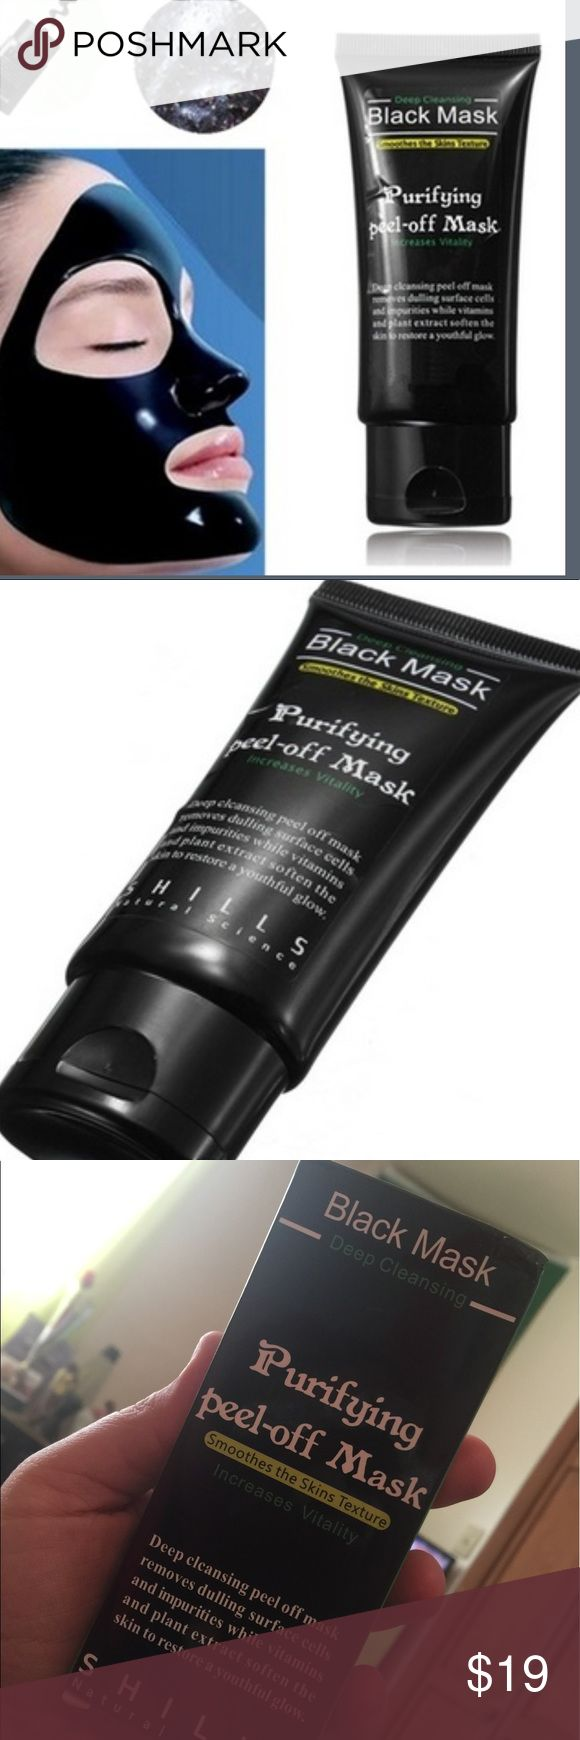 💜Black peel-off mask 💜 Brand new in the box. Size 50ml. shills Accessories